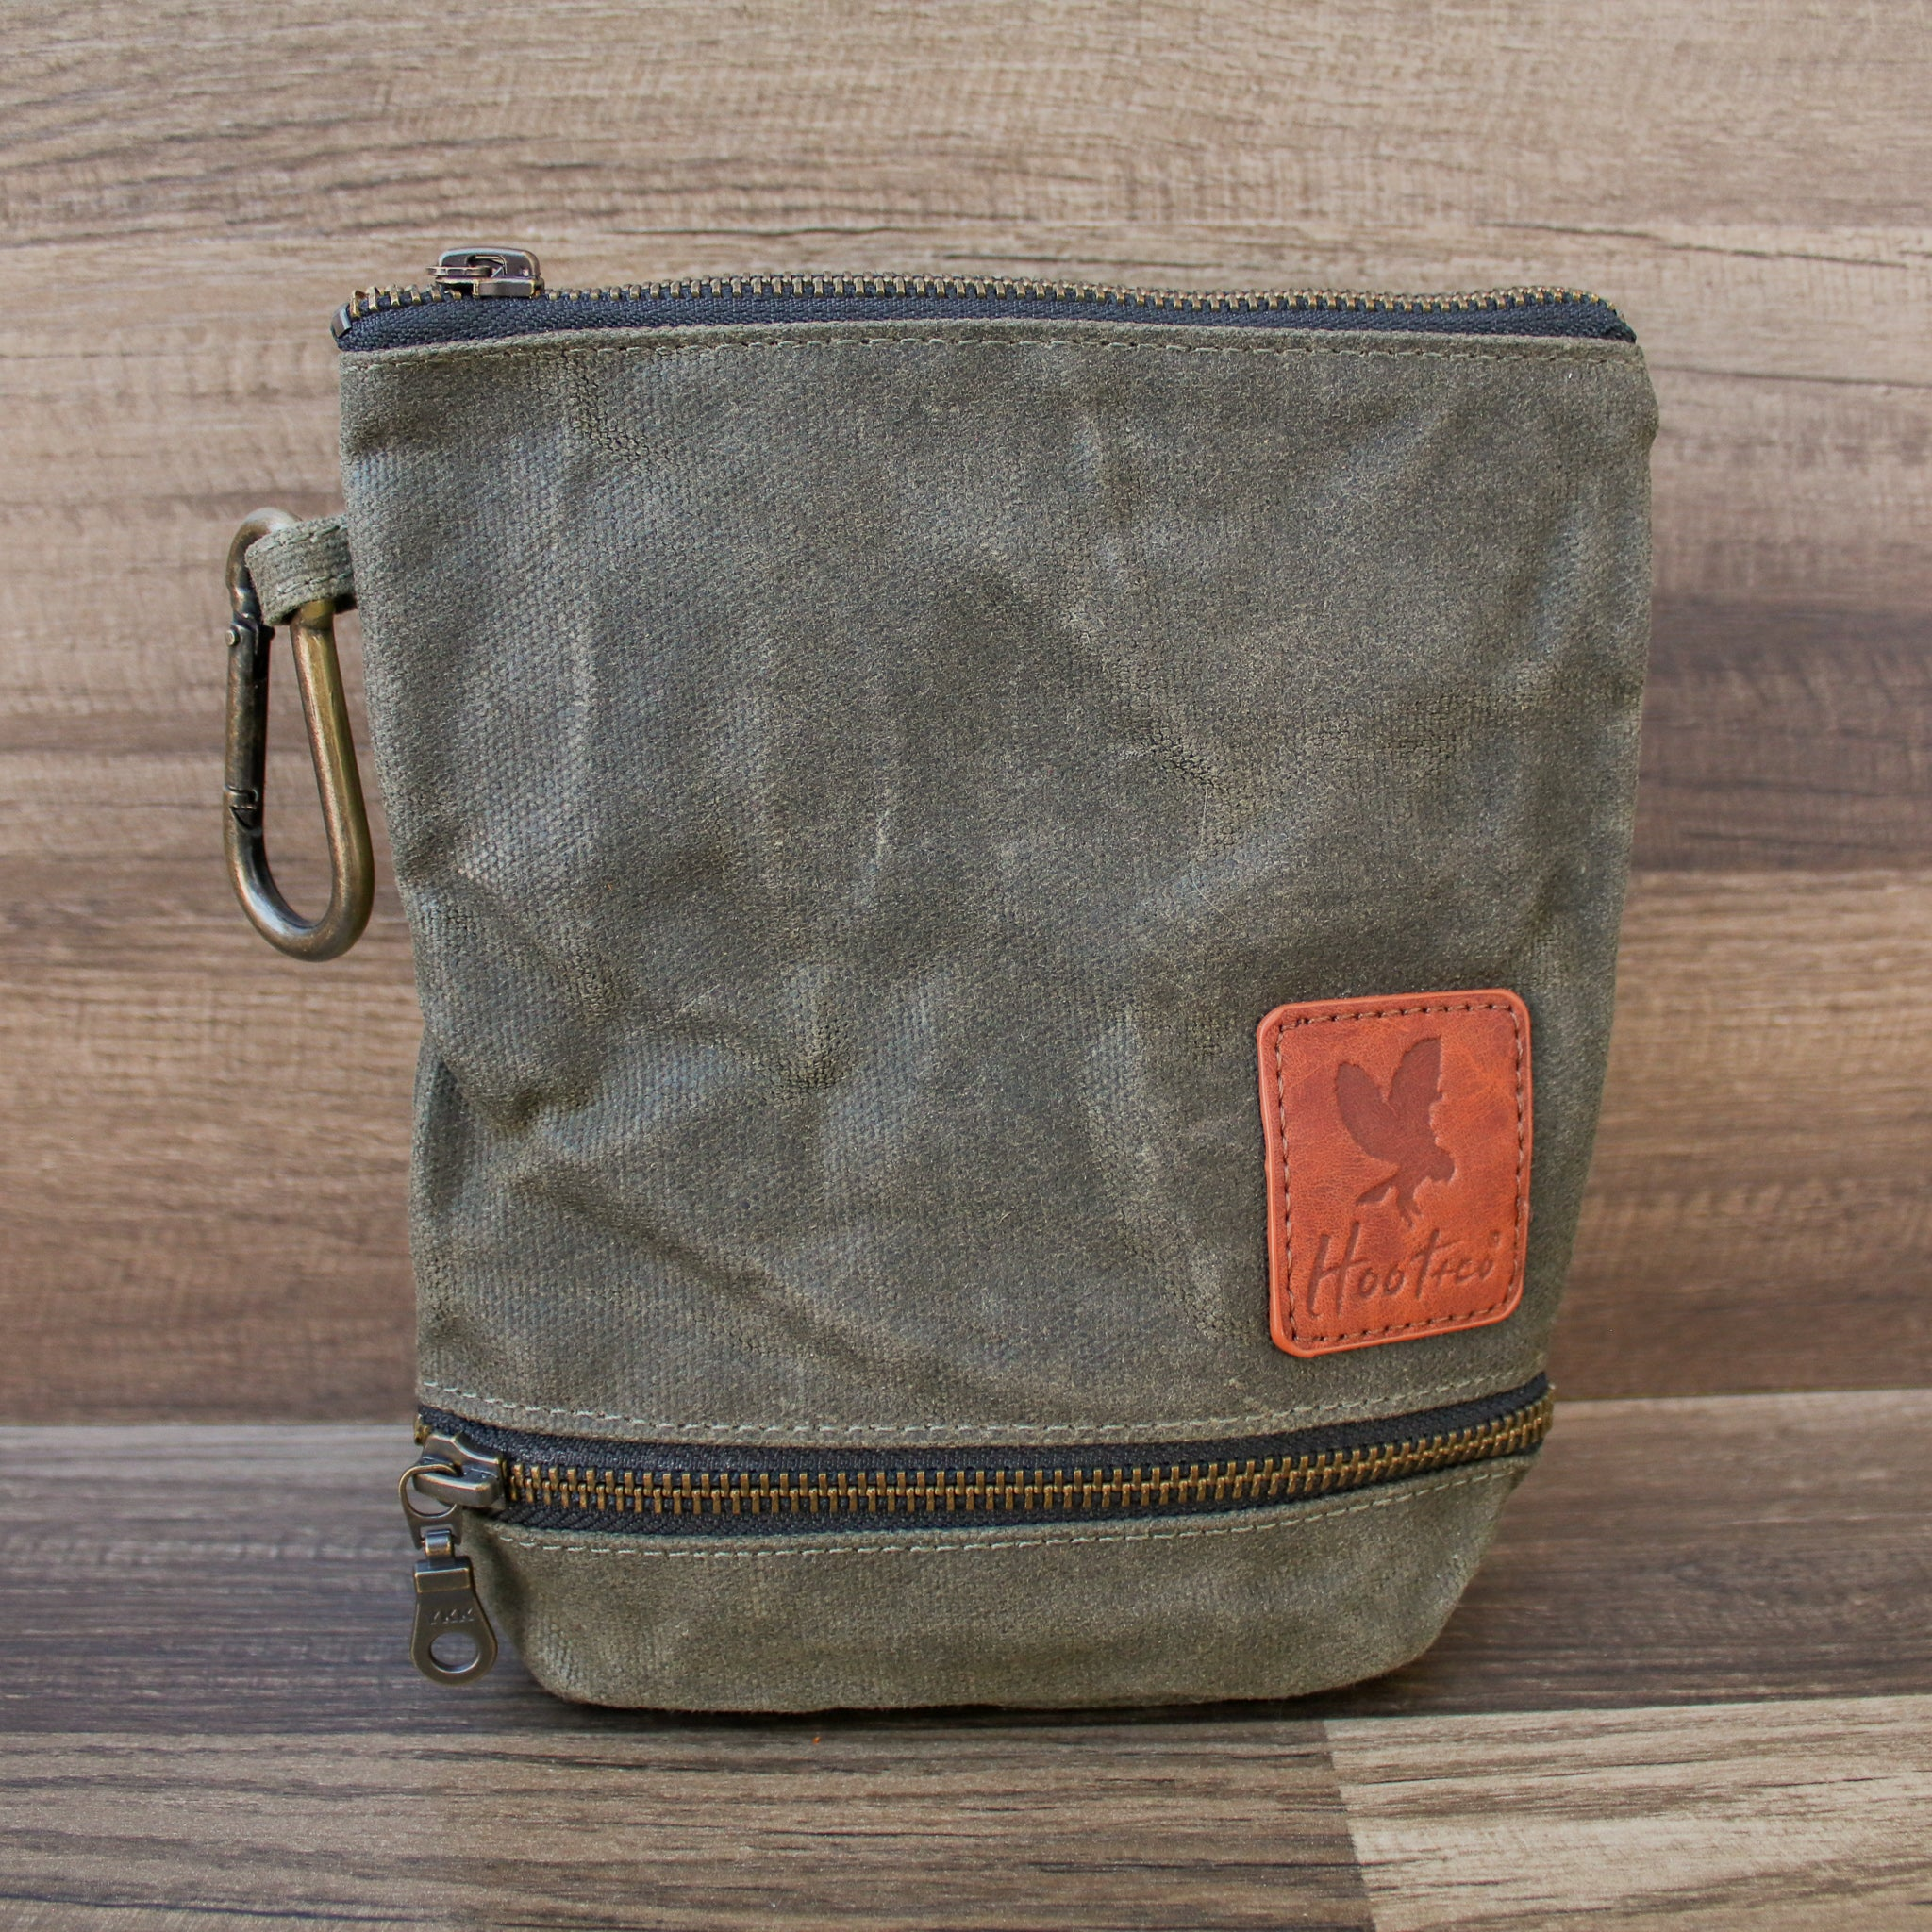 Waxed Canvas Combo Bag Holder - Olive